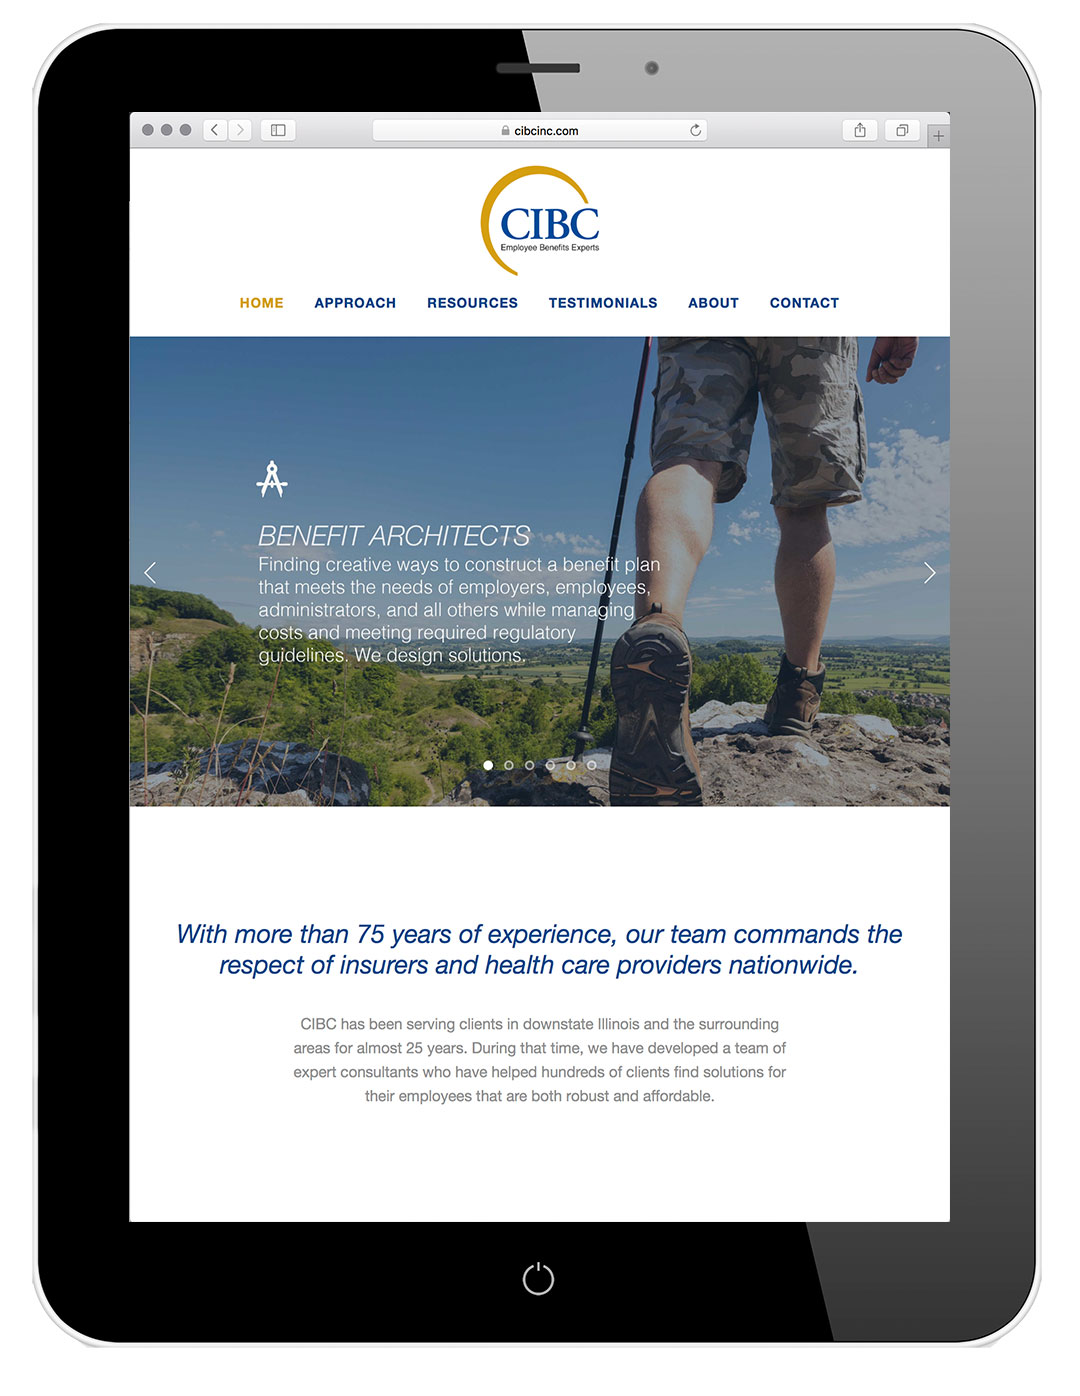 CIBC's newly designed website, designed and implemented by Cfx